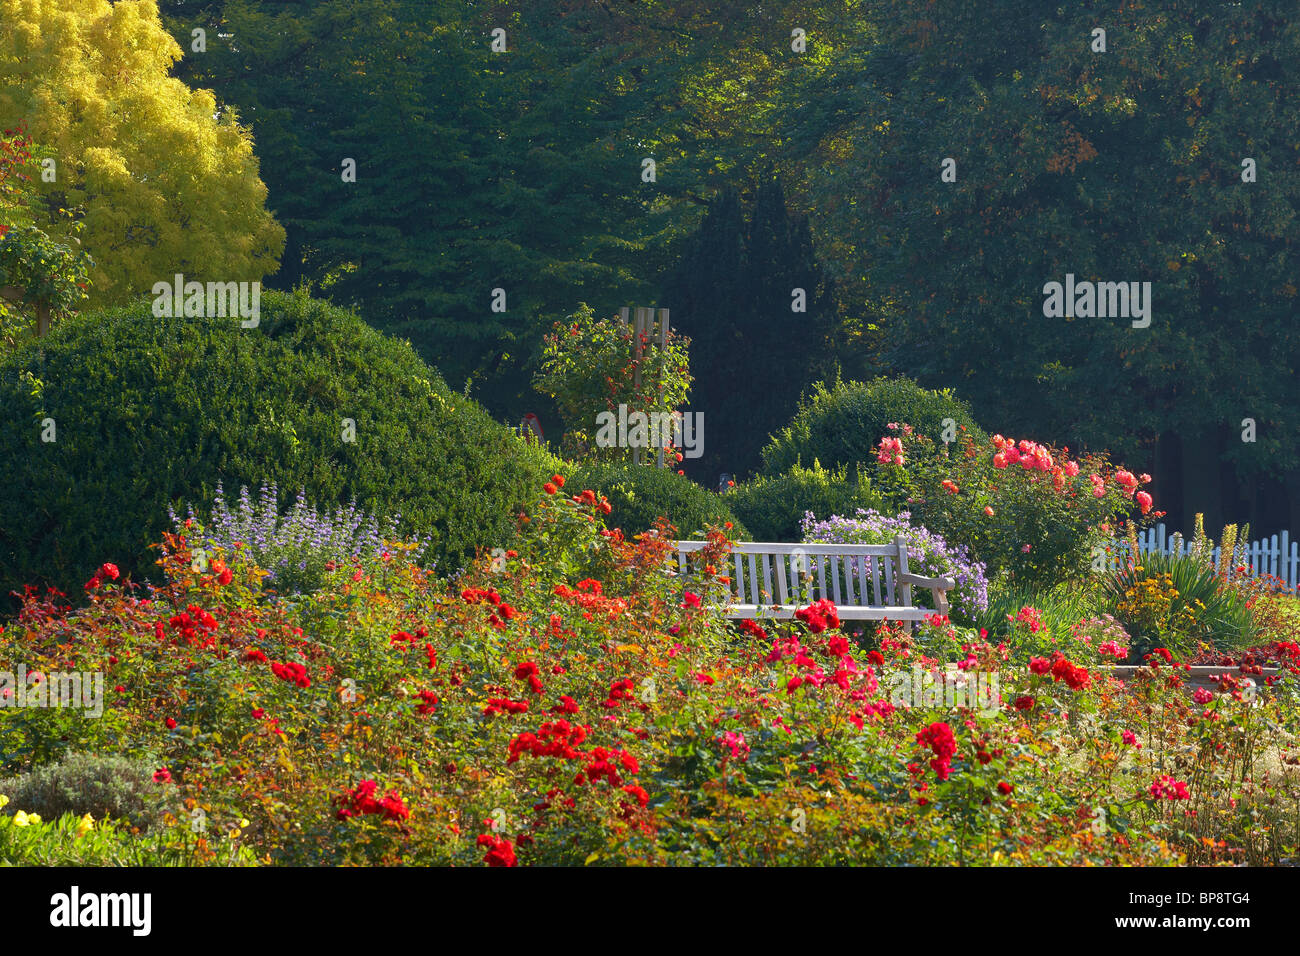 Westfalenpark, Dortmund, Ruhrgebiet, North Rhine-Westphalia, Germany, Europe Stock Photo